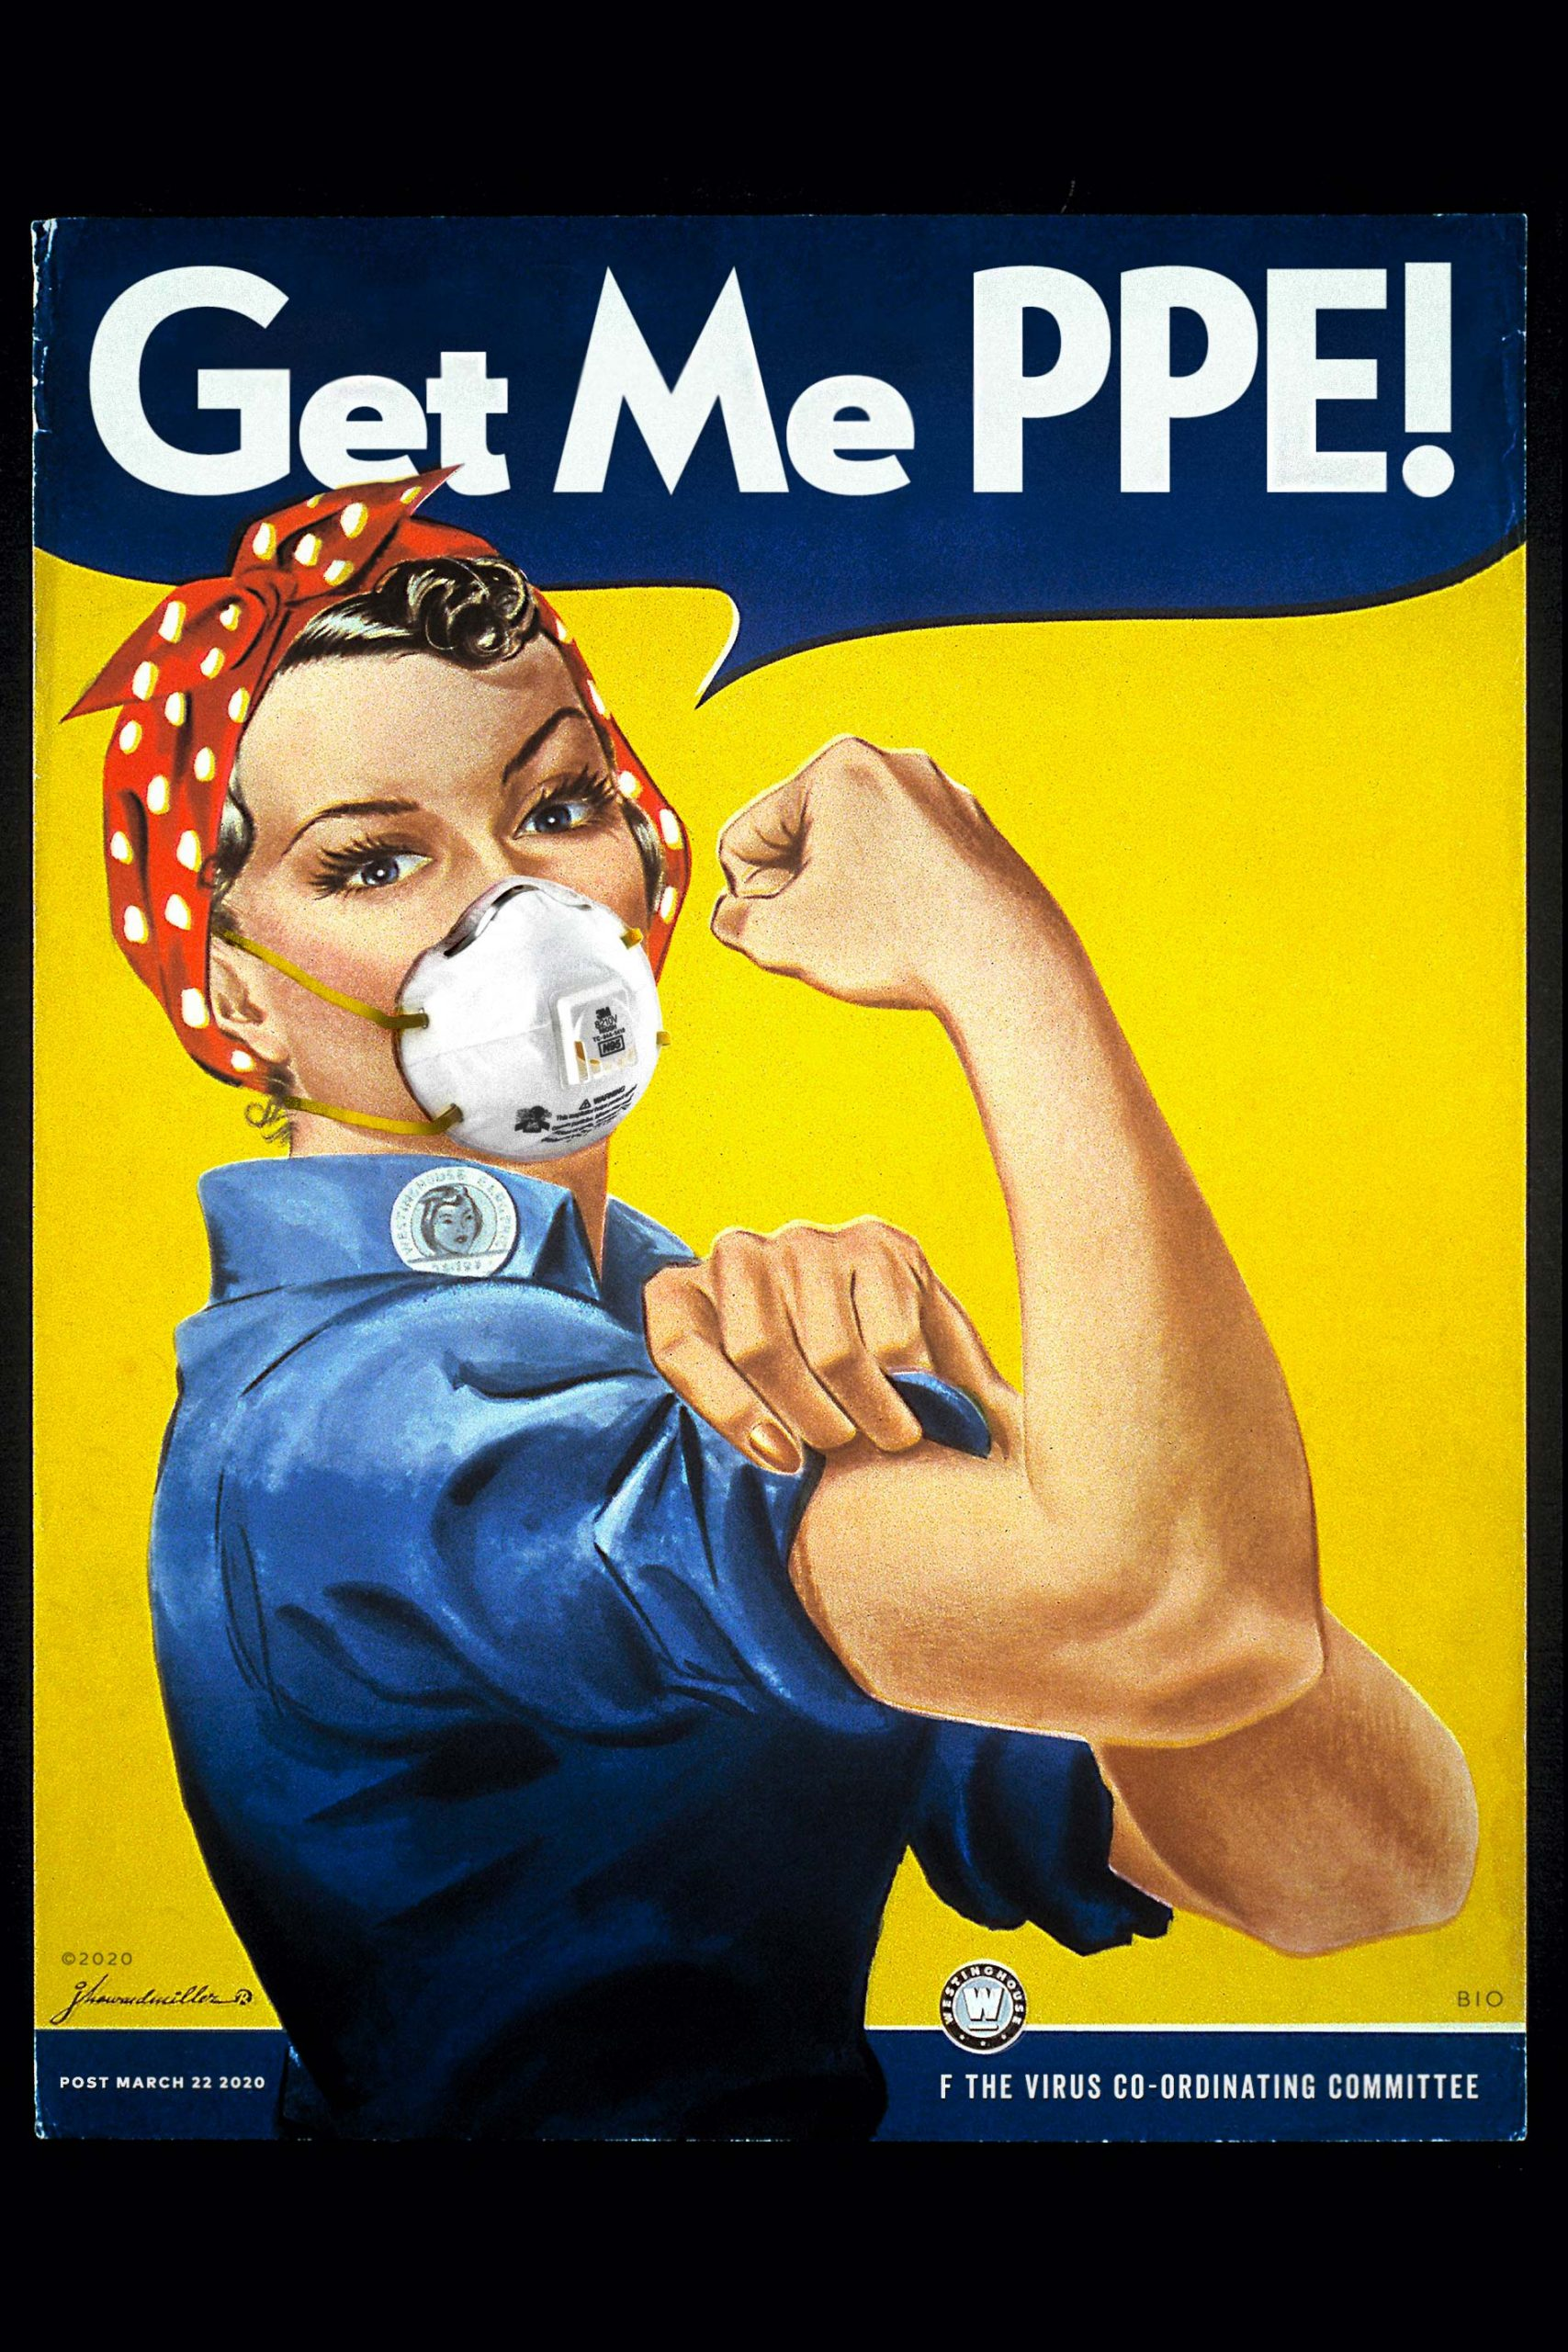 Get Me PPE!